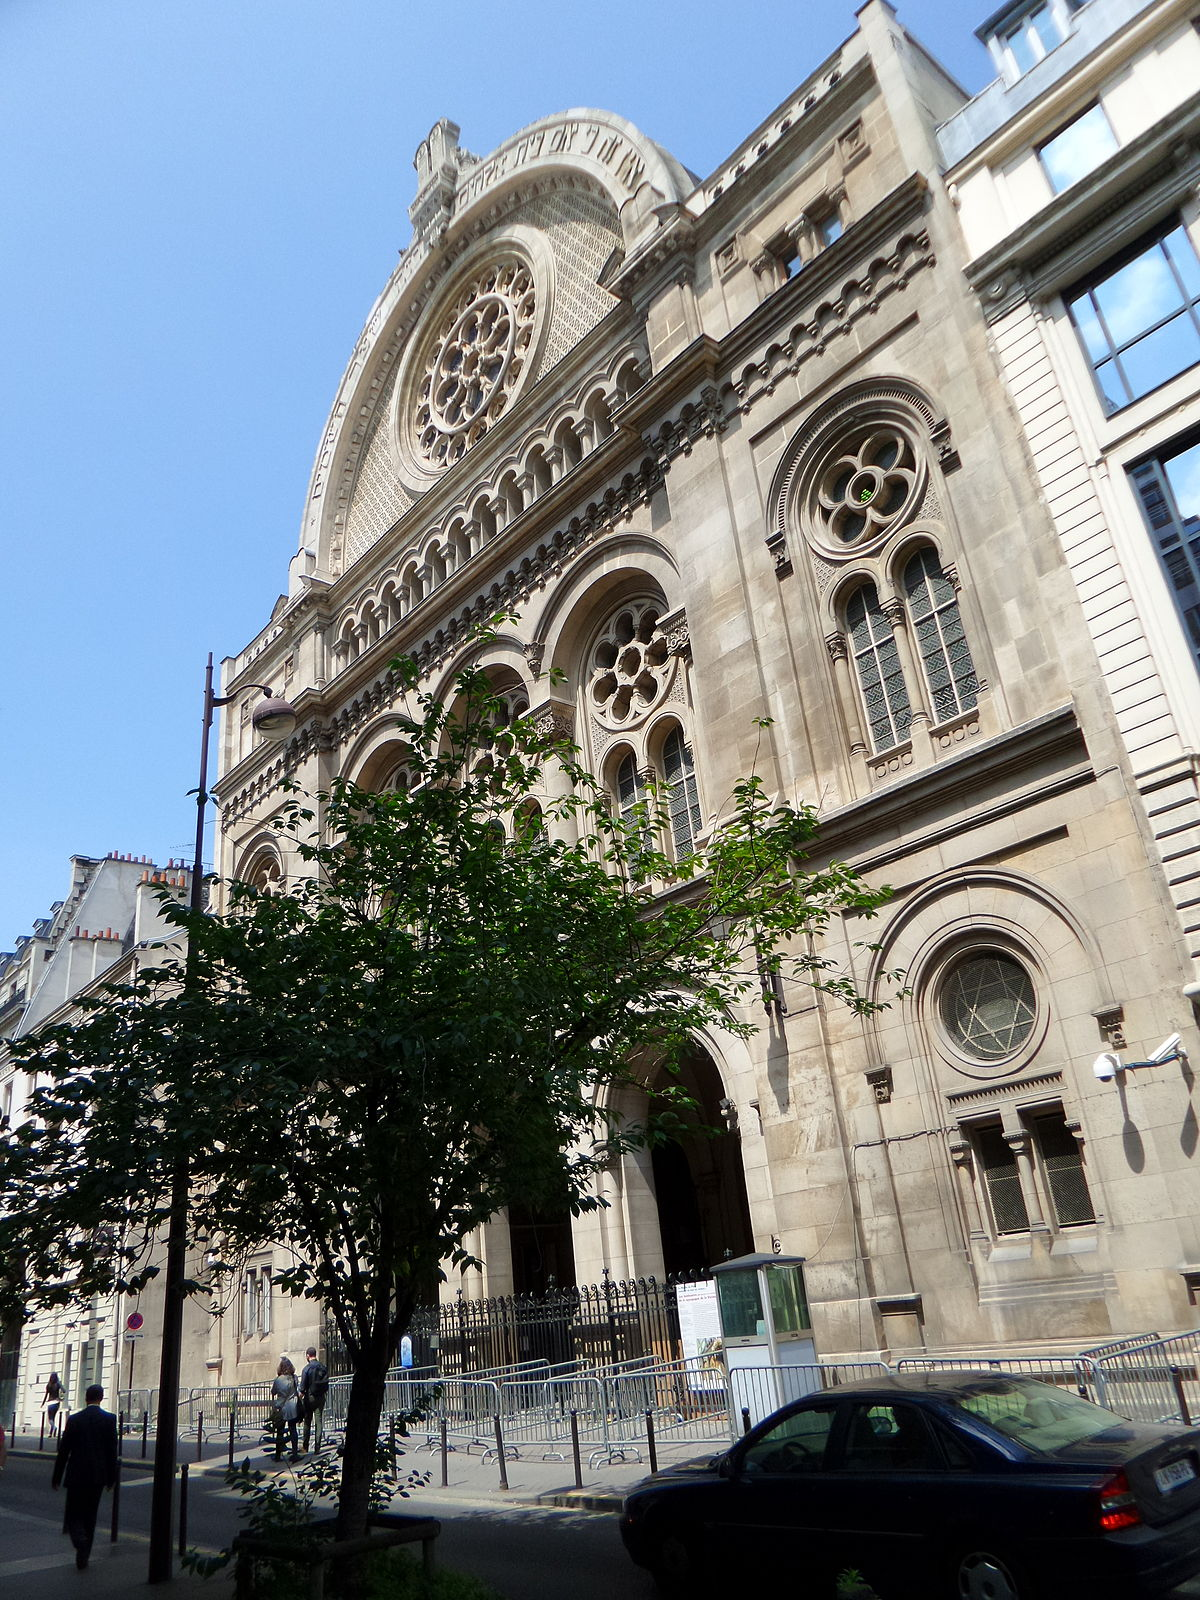 Grande Paris Grande Synagogue Paris De Synagogue De QsdhCtBrxo